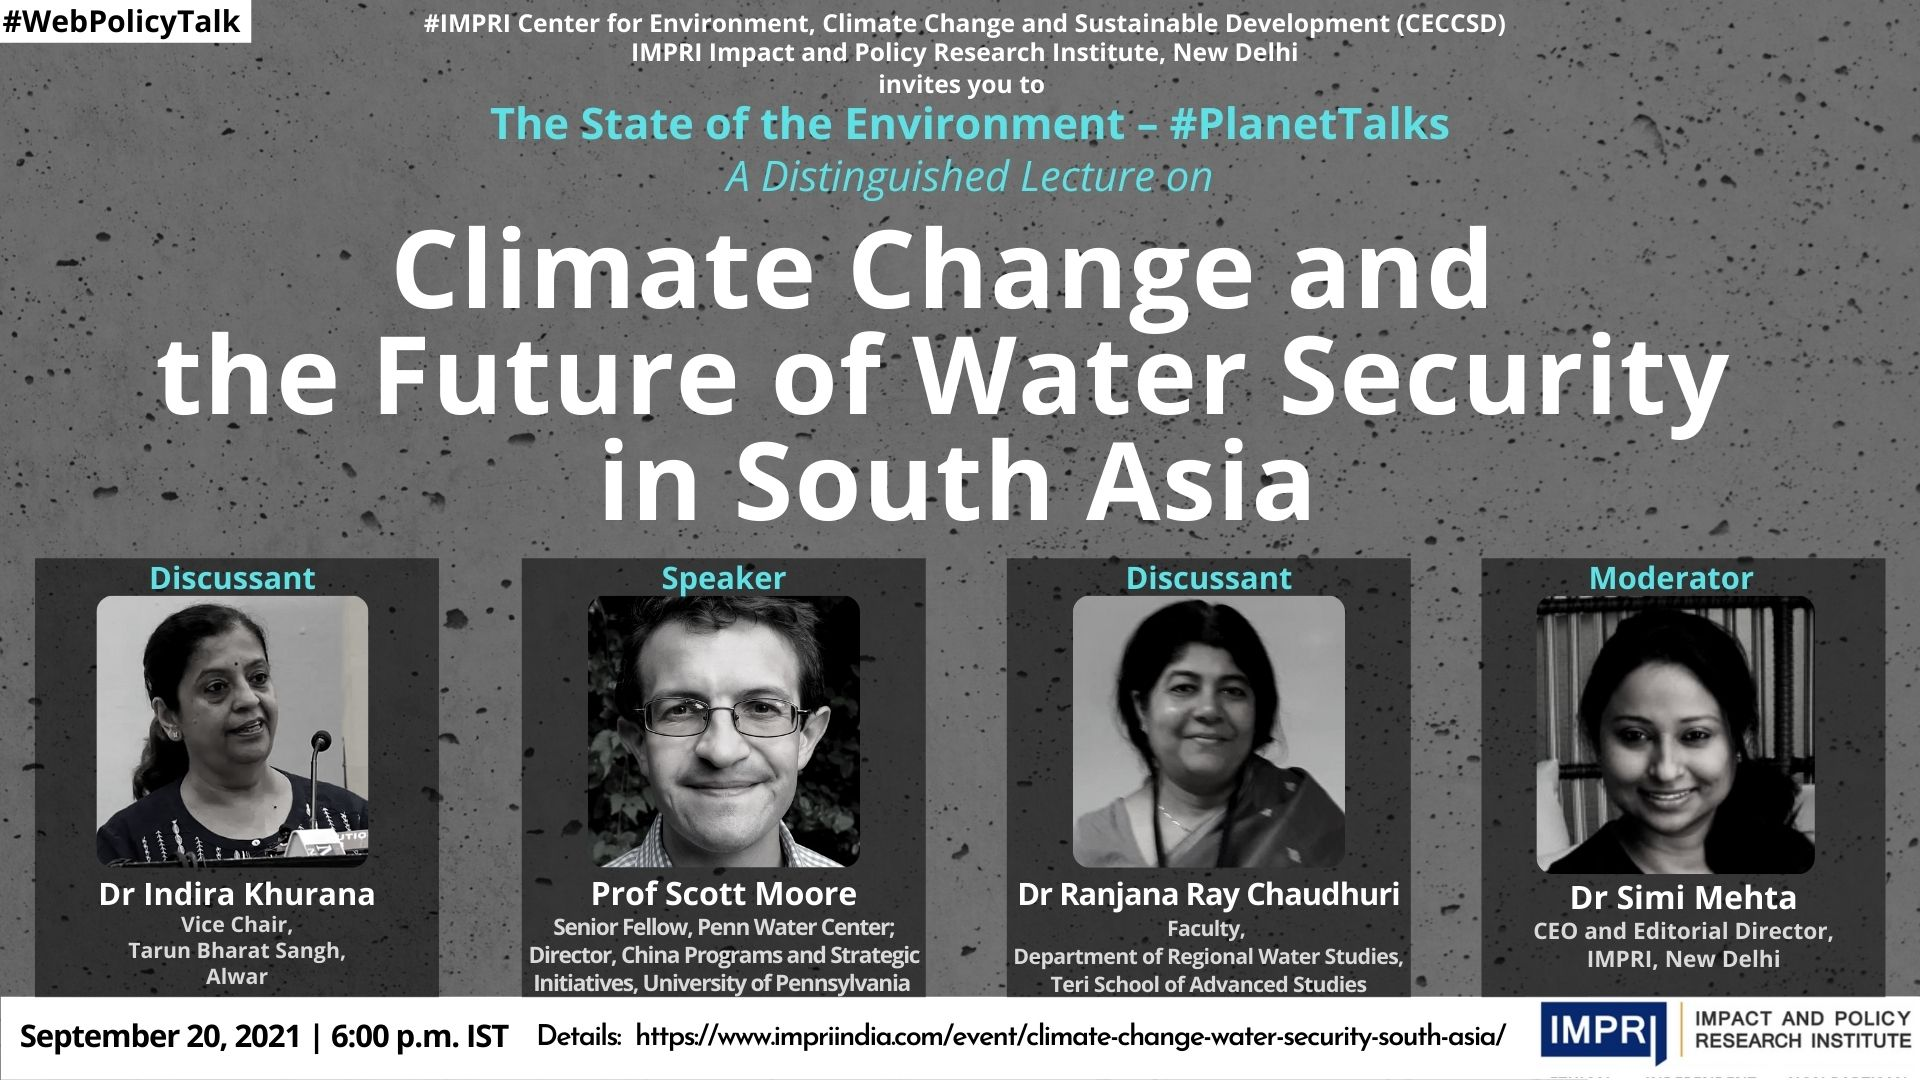 Climate Change and the Future of Water Security in South Asia